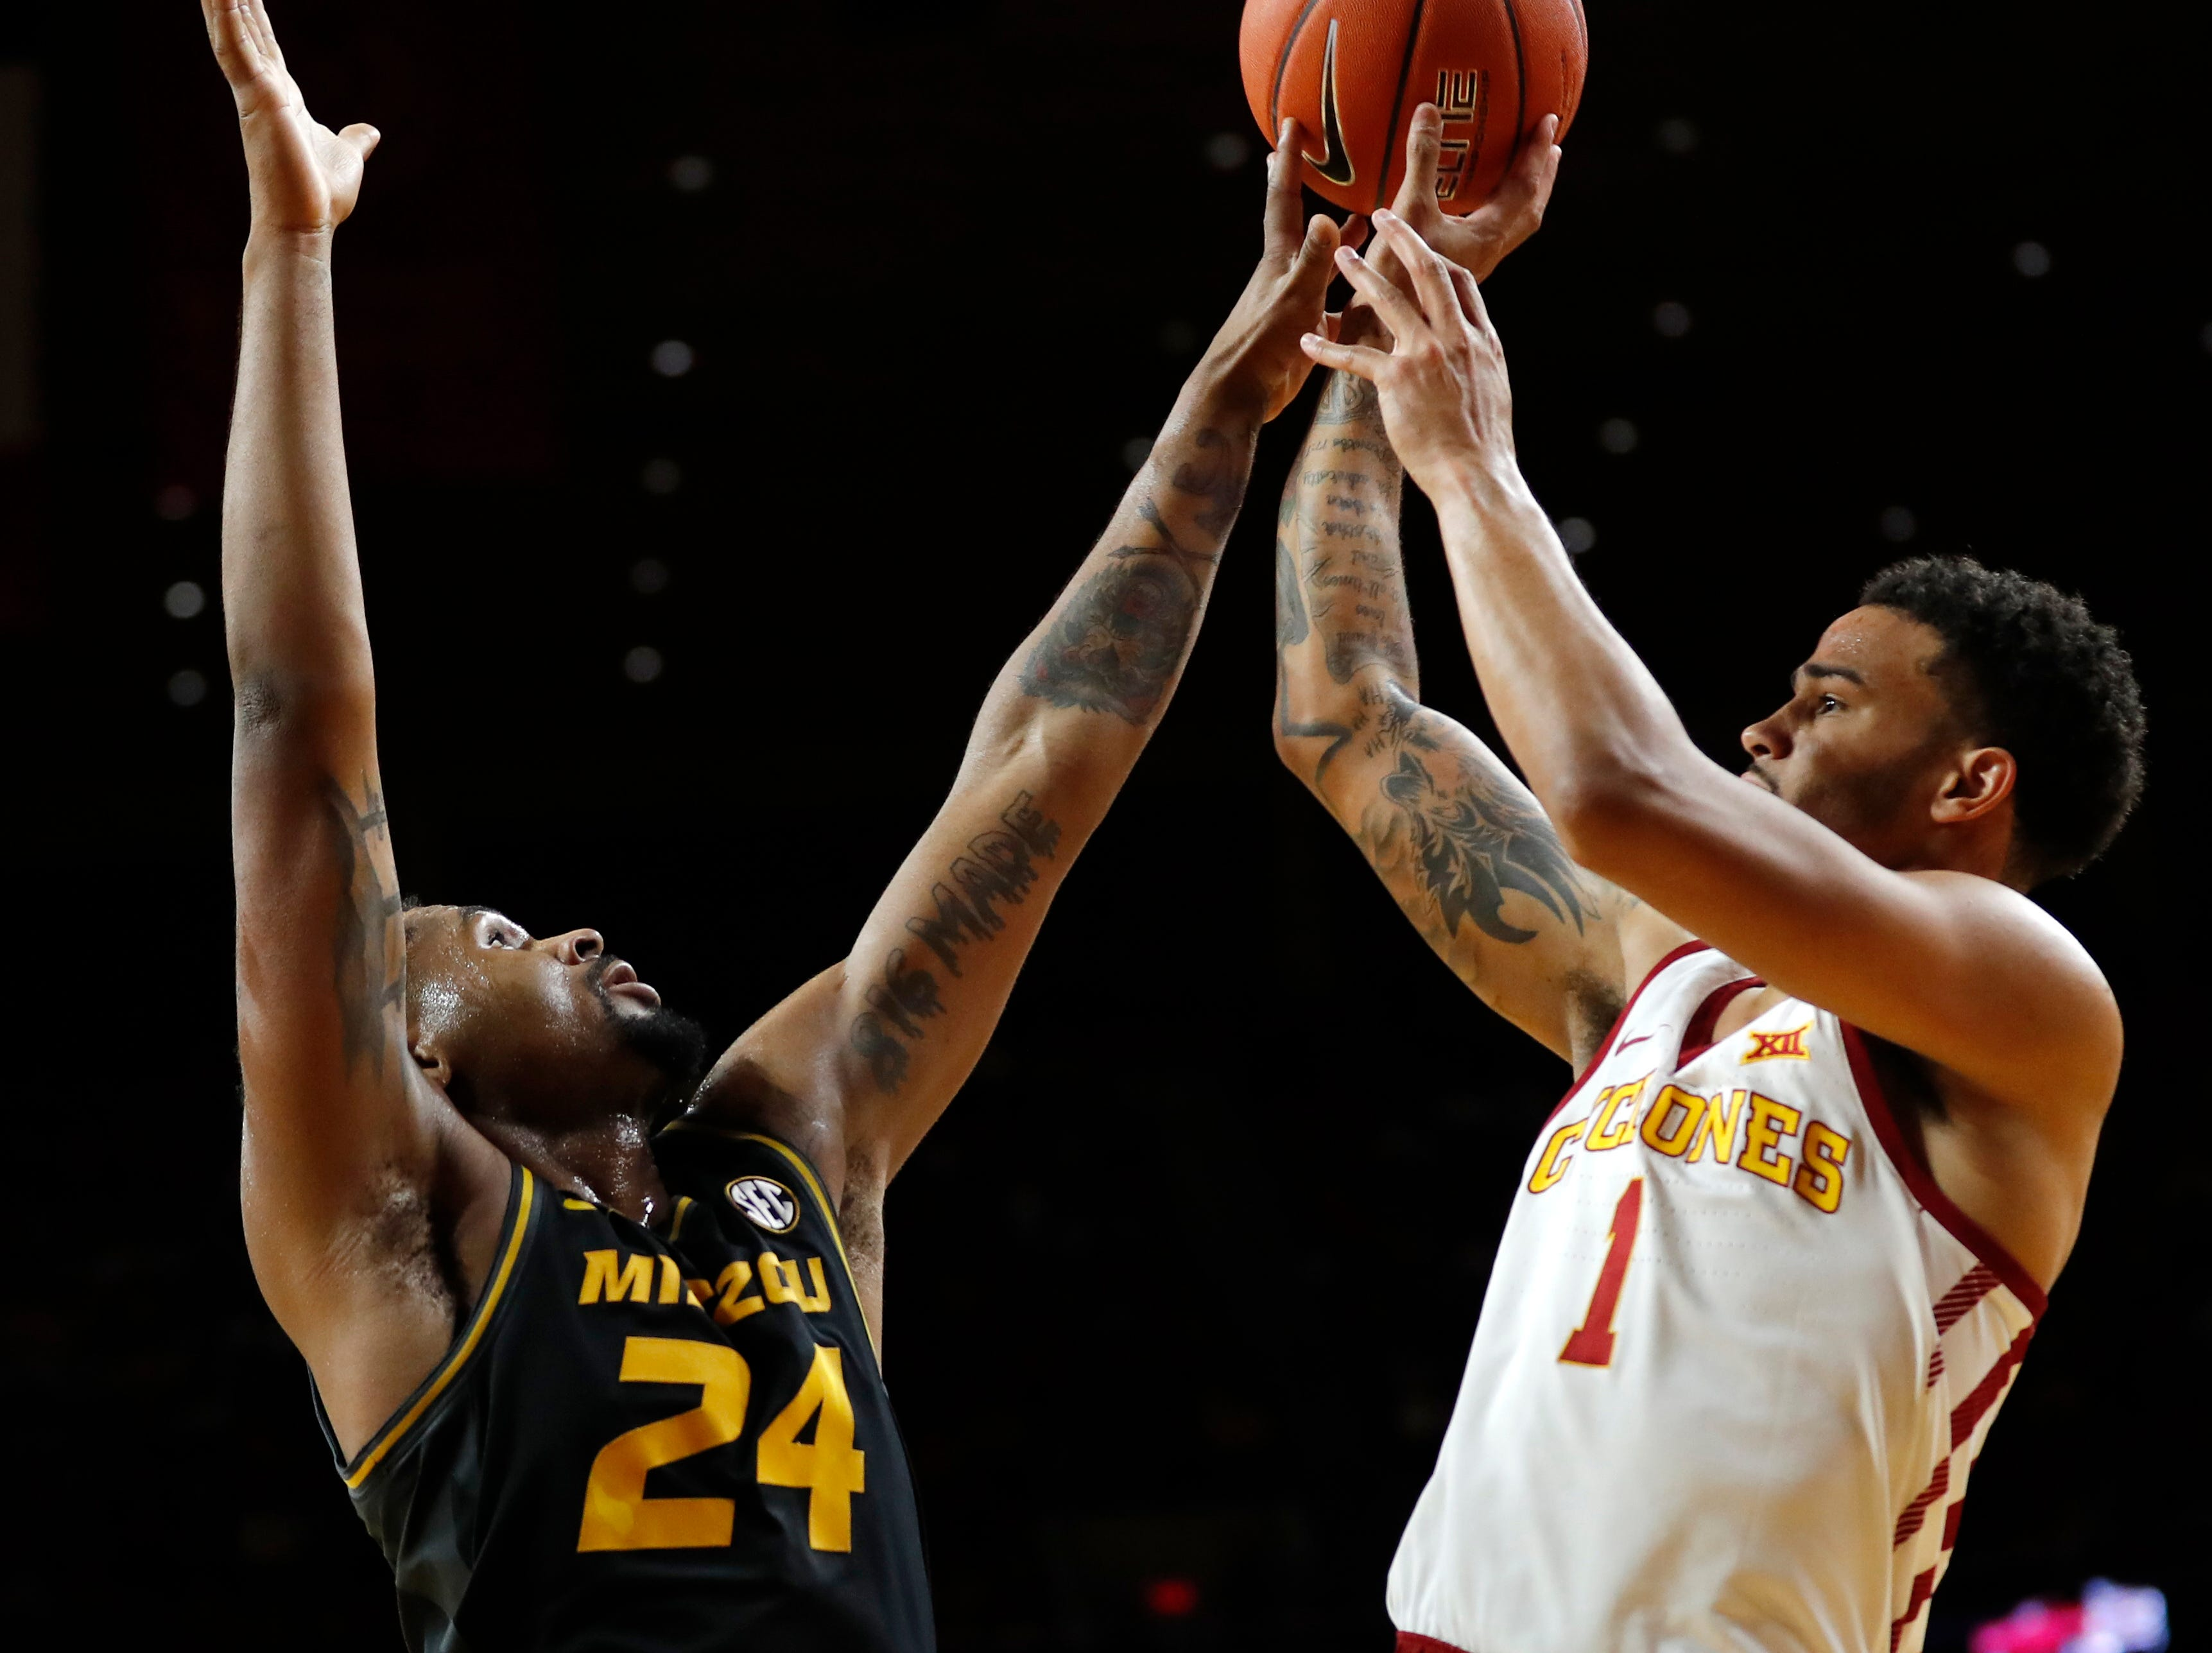 Iowa State guard Nick Weiler-Babb (1) is fouled by Missouri forward Kevin Puryear (24) during the first half of an NCAA college basketball game, Friday, Nov. 9, 2018, in Ames, Iowa.